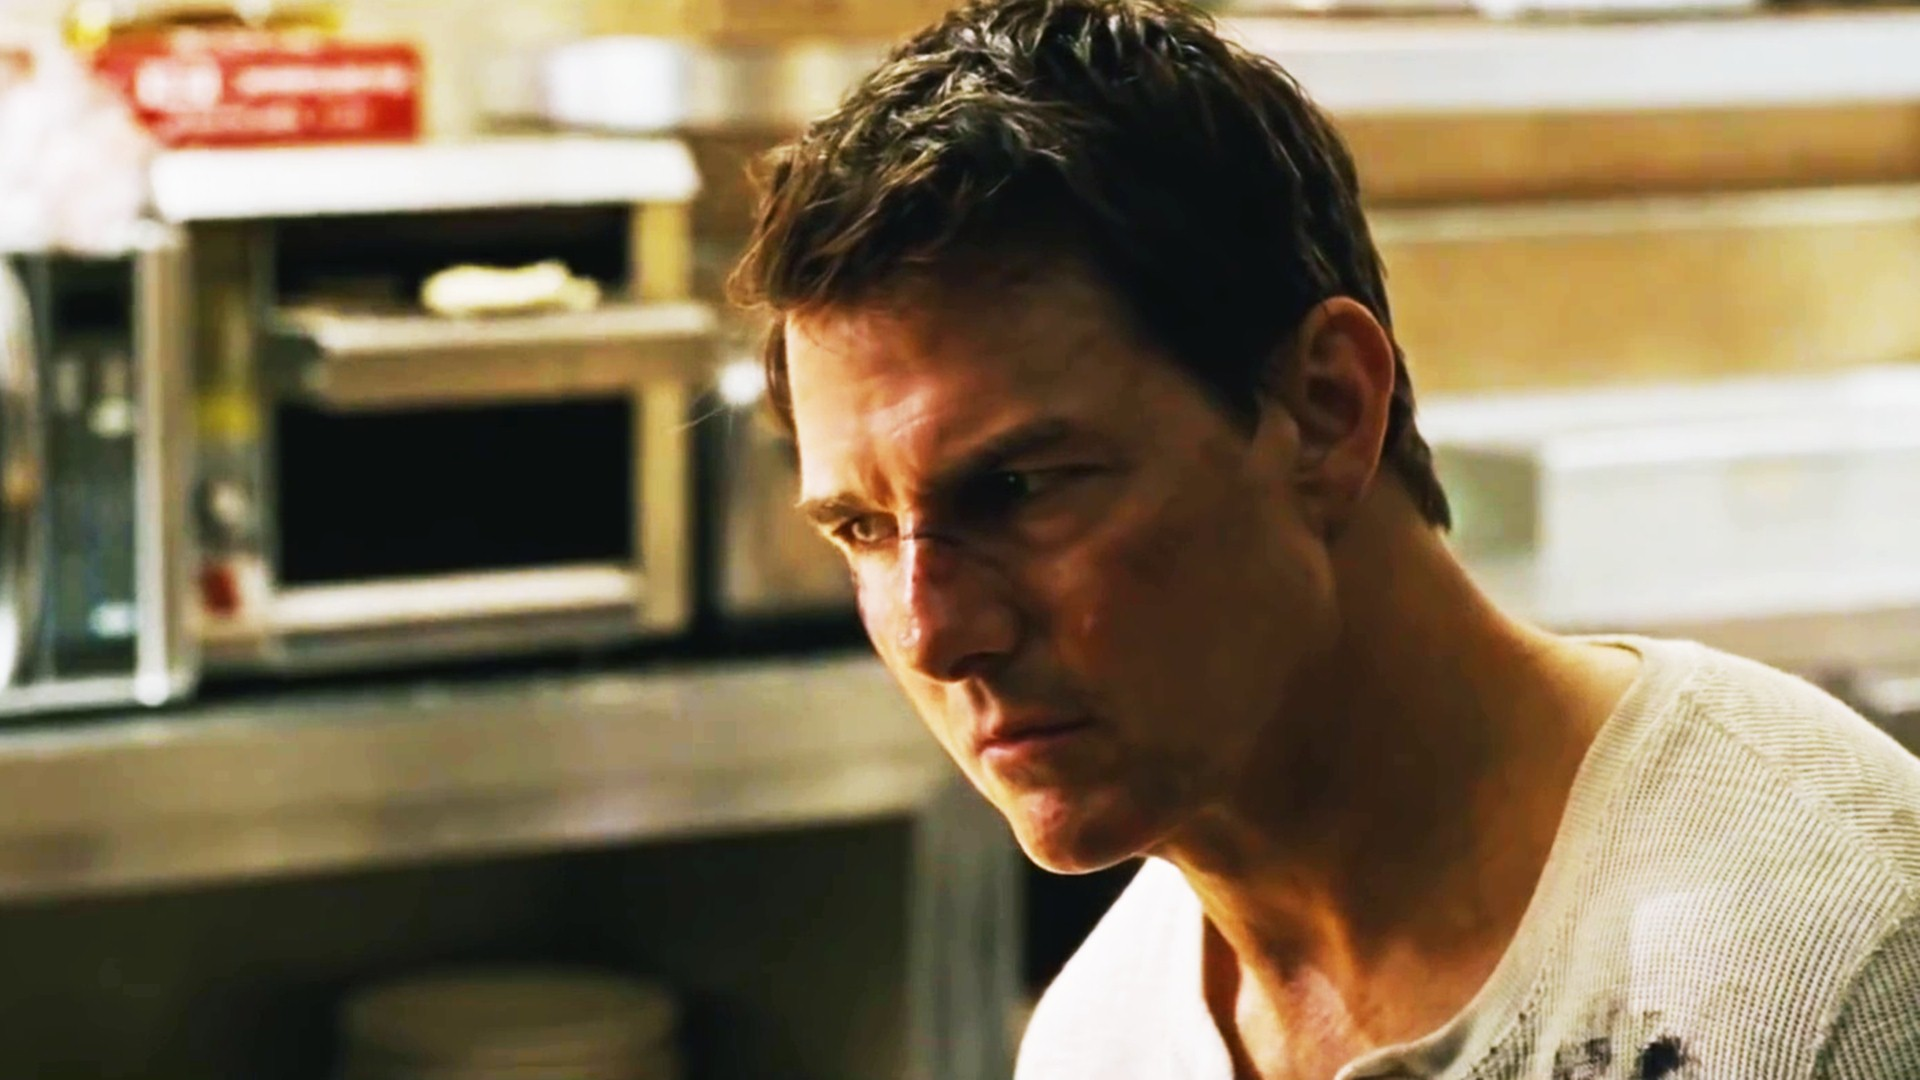 Tom Cruise Actor In Jack Reacher Never Go Back Wallpaper 03134 1920x1080